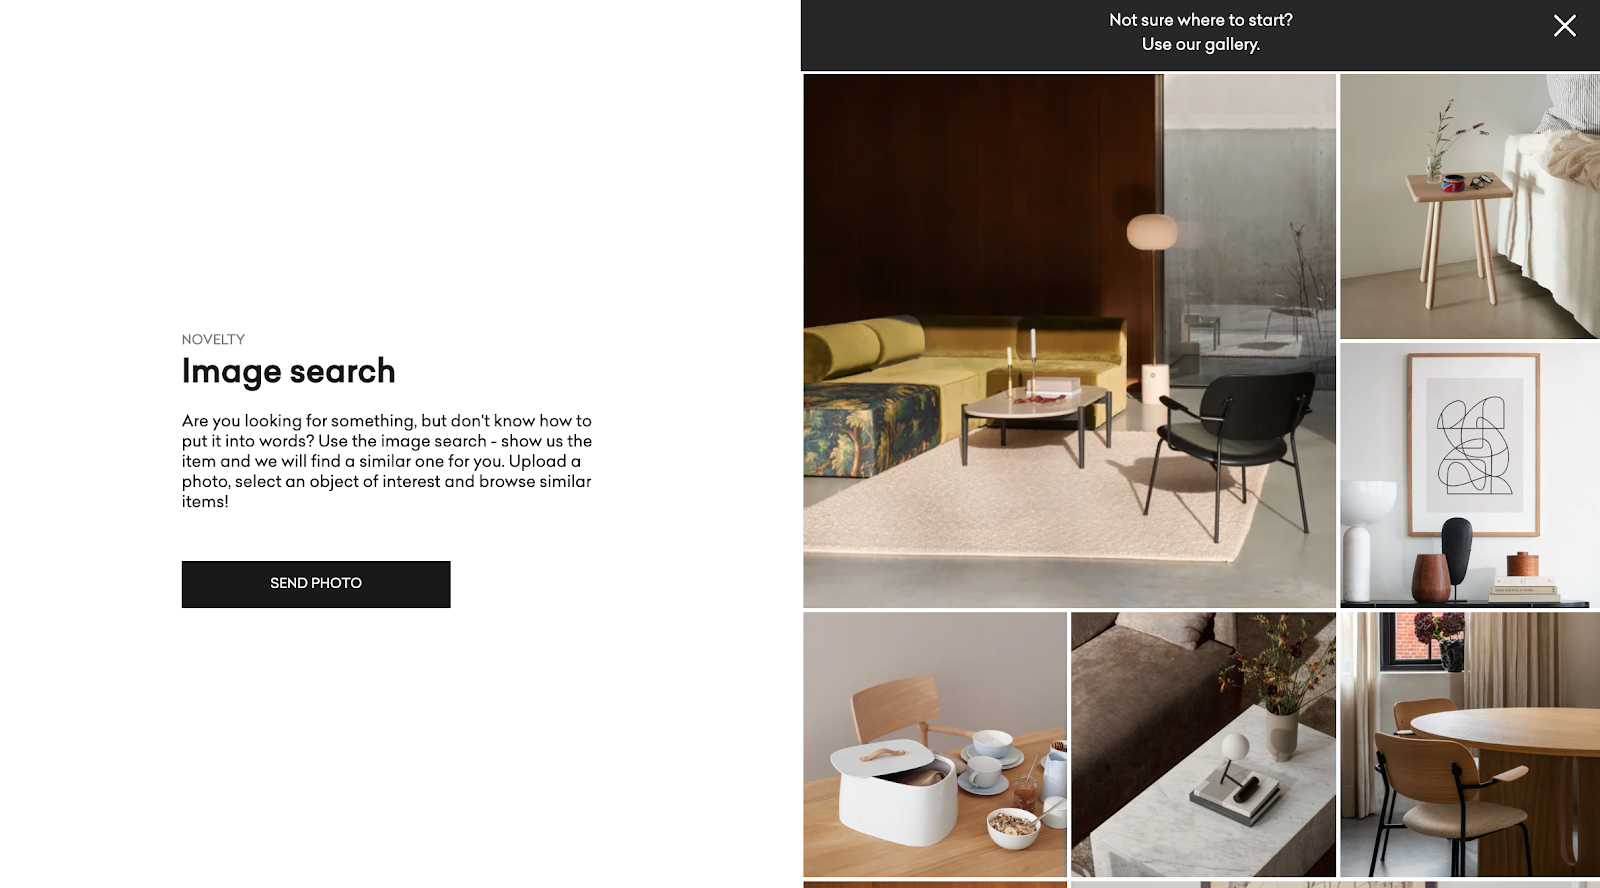 Yestersen's visual search tool